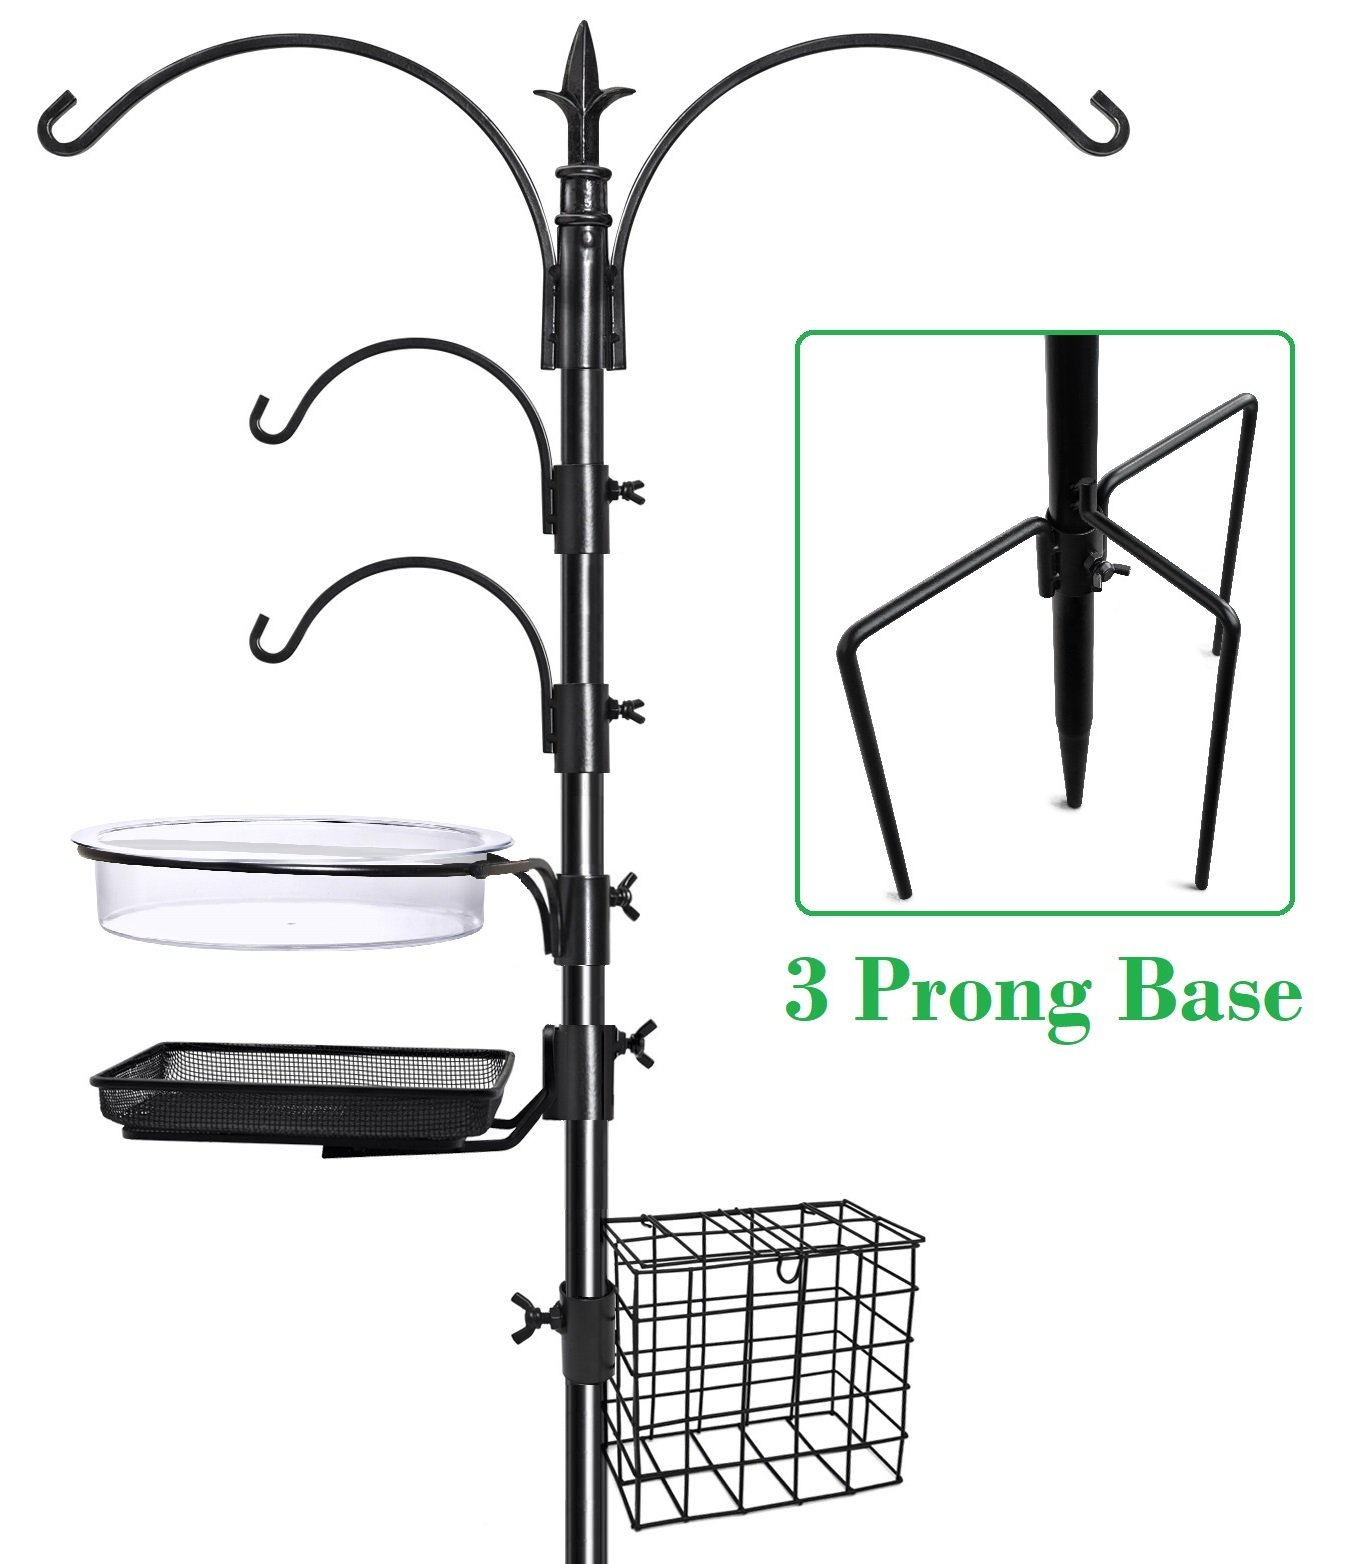 Gray Bunny GB-6844D Deluxe Premium Bird Feeding Station, 22'' Wide x 91'' Tall (82 inch above ground) Black, Multi Feeder Hanging Kit & Bird Bath For Attracting Wild Birds, Birdfeeder & Planter Hanger by Gray Bunny (Image #1)